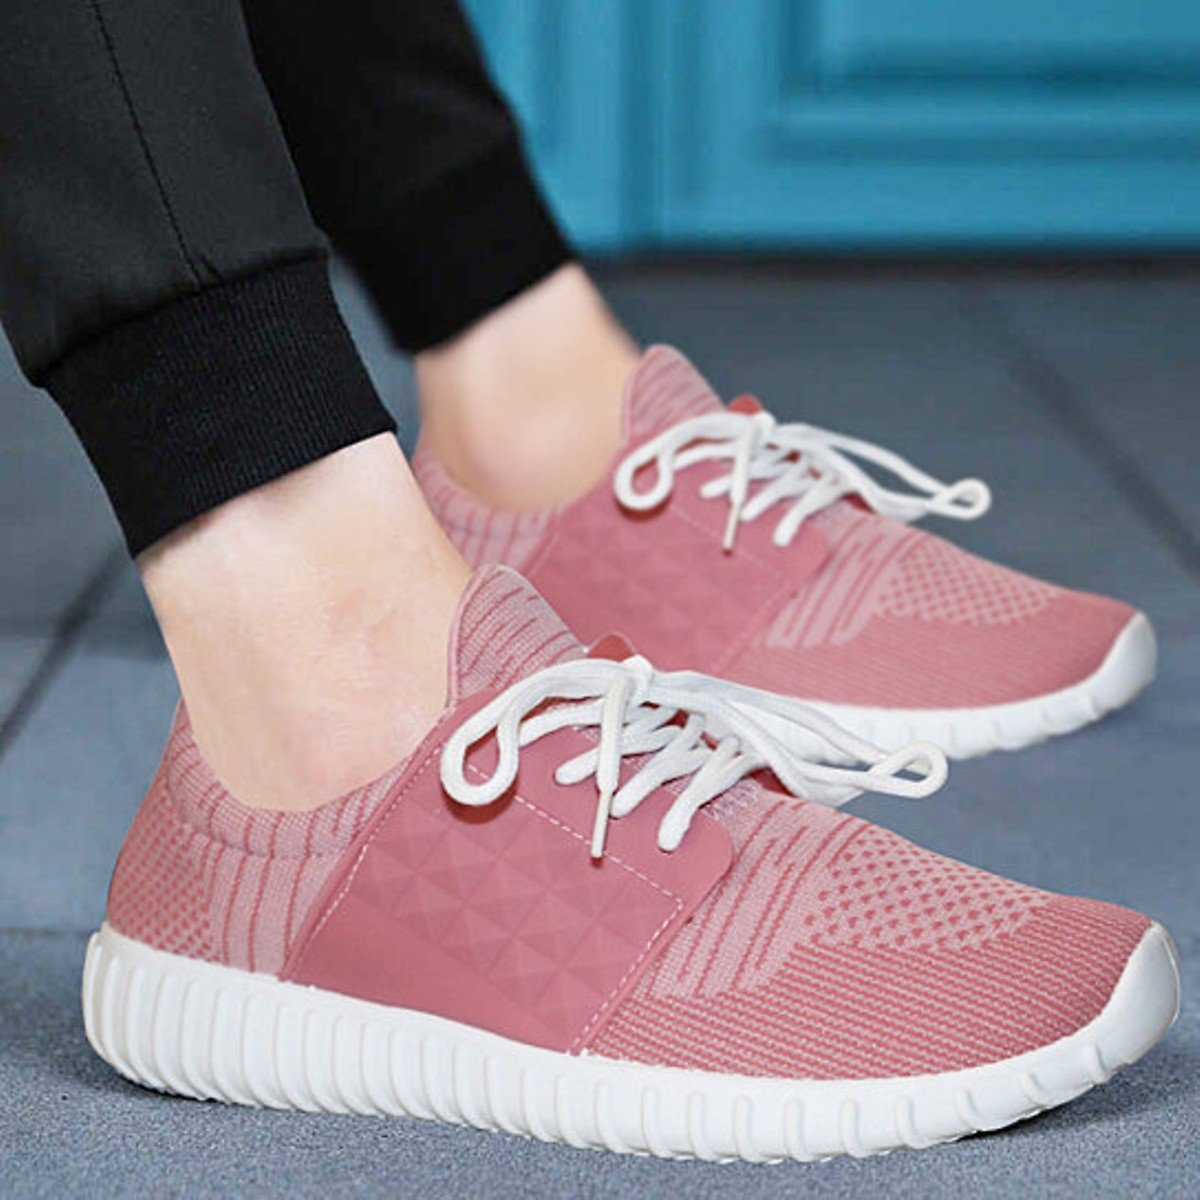 Women's Casual Breathable Memory Foam Lace-Up Sneakers